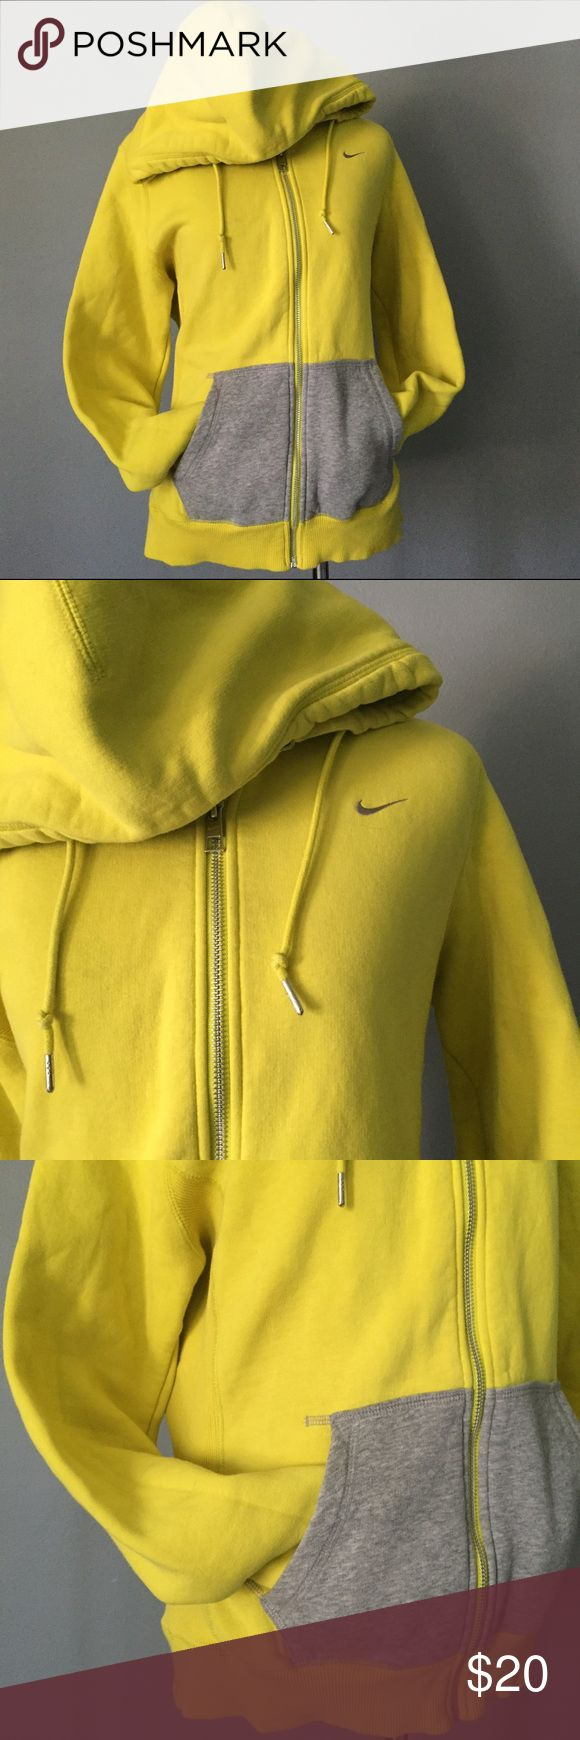 yellow nike sweater